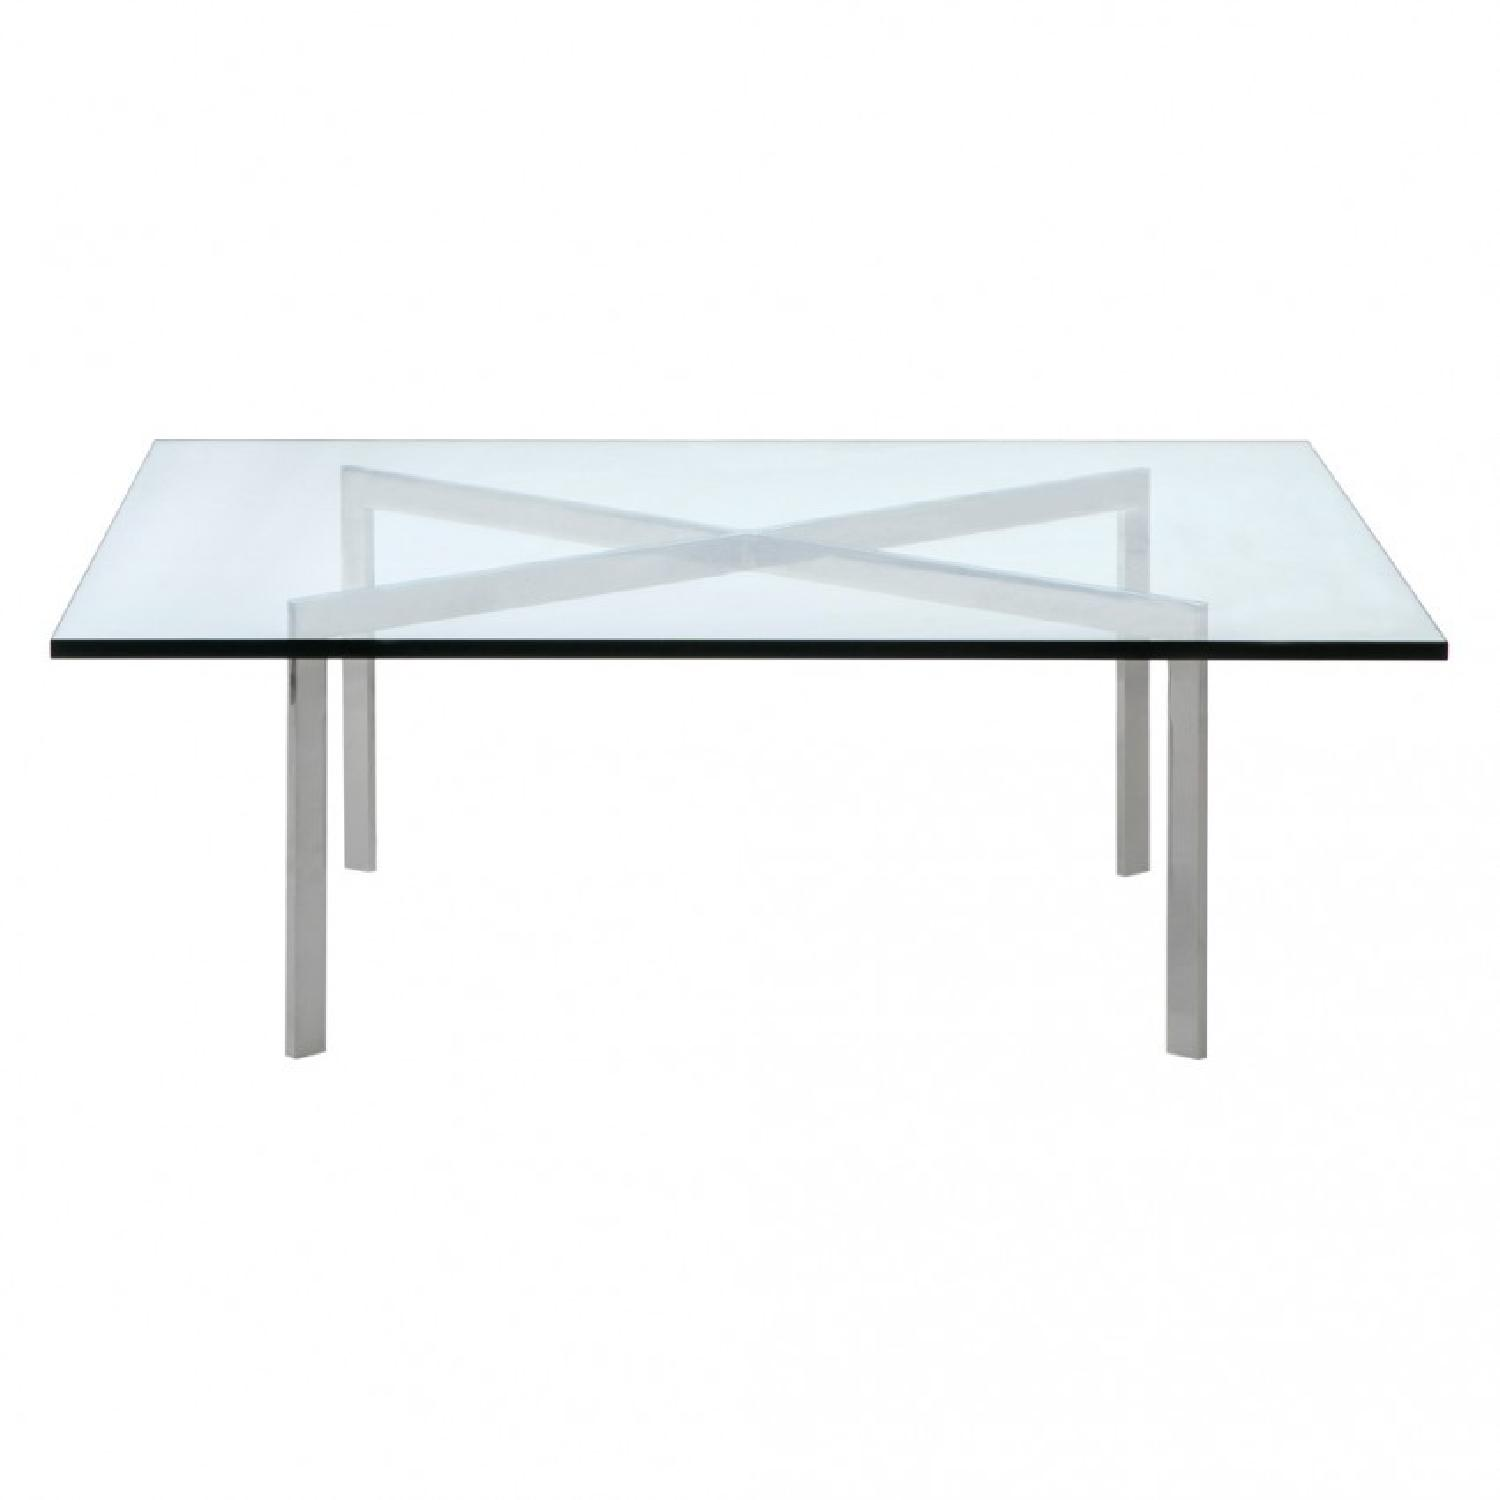 Knoll Barcelona Square Glass U0026 Chrome Coffee Table ...